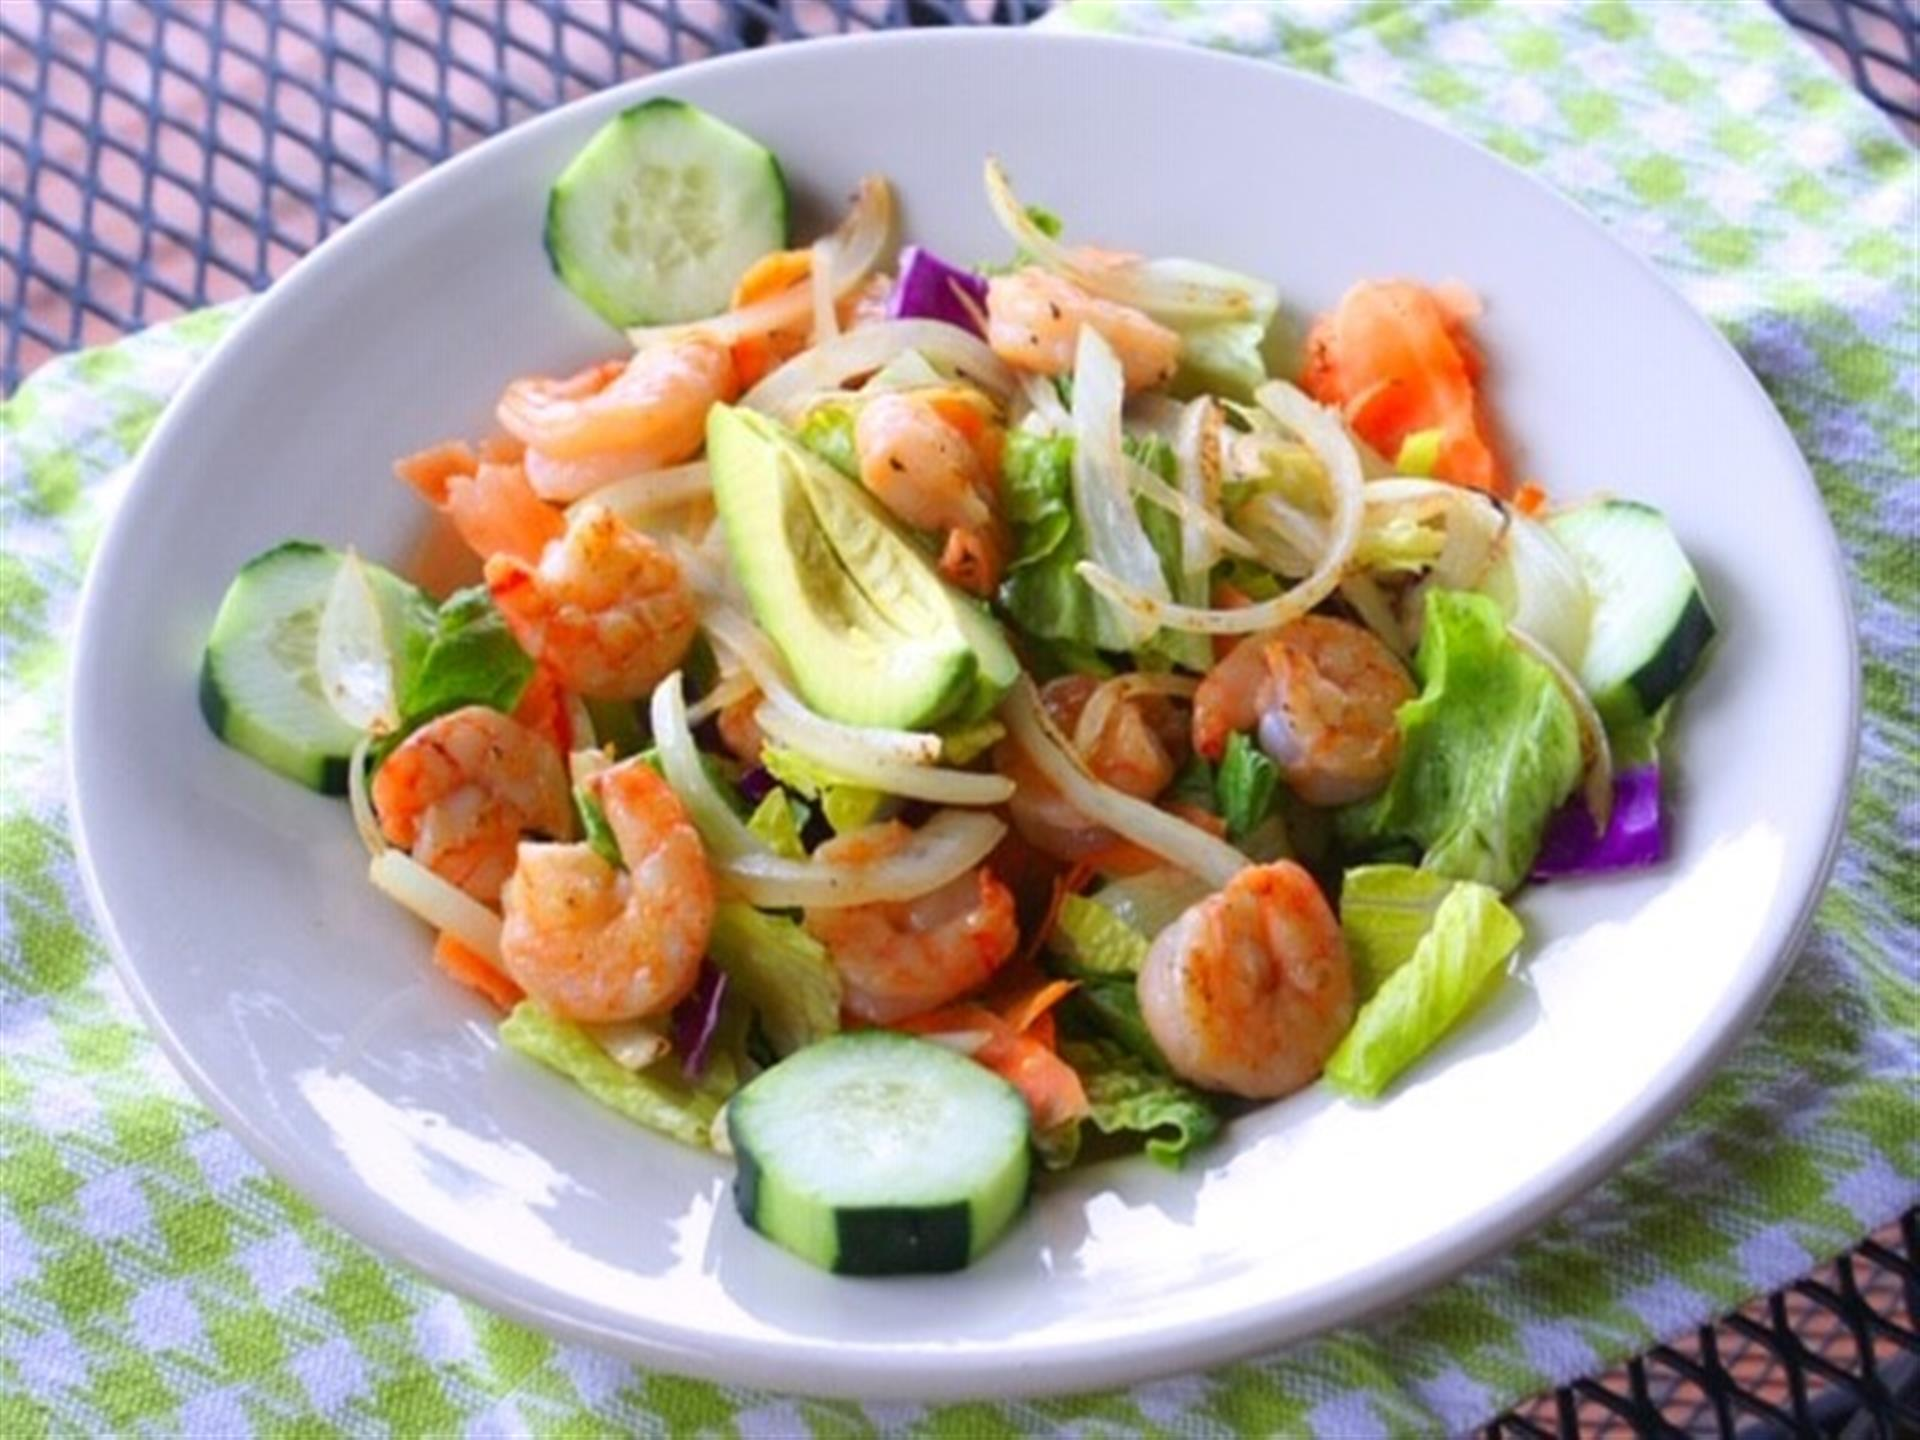 Cancun Salad. A bed of fresh hearts of romaine, cucumbers and fresh avocado slices, topped with grilled shrimp and onions